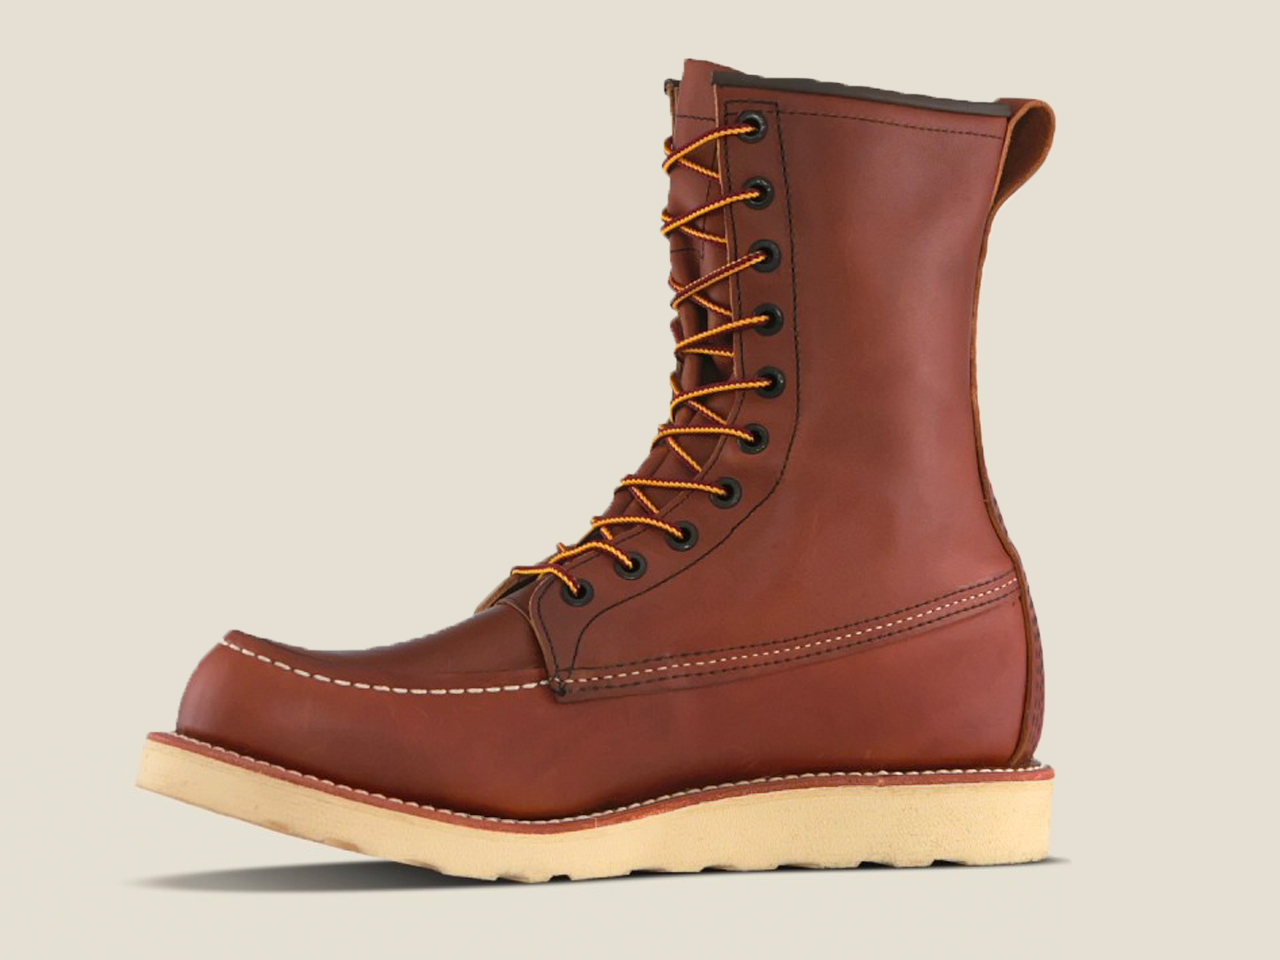 Red Wing Case Study